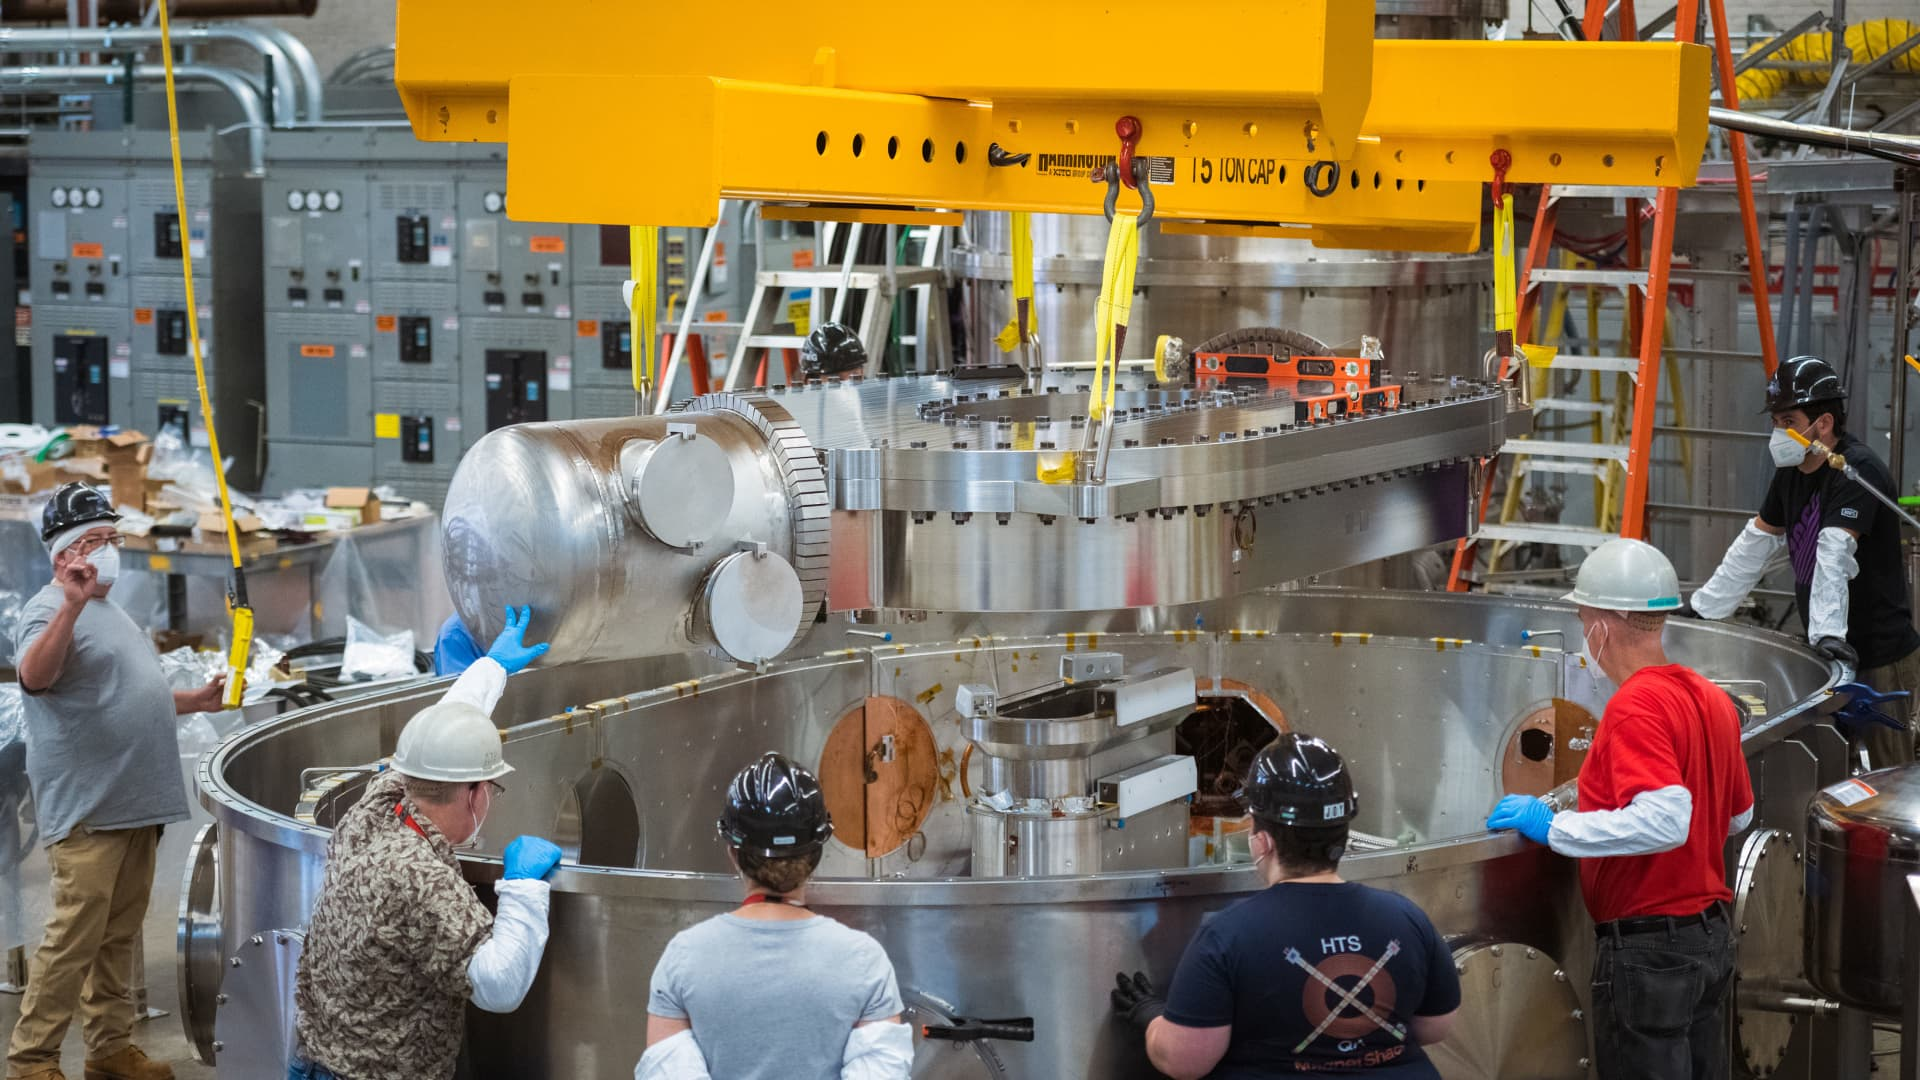 Team members from CFS and MIT here are lowering the superconducting magnet into the test stand.